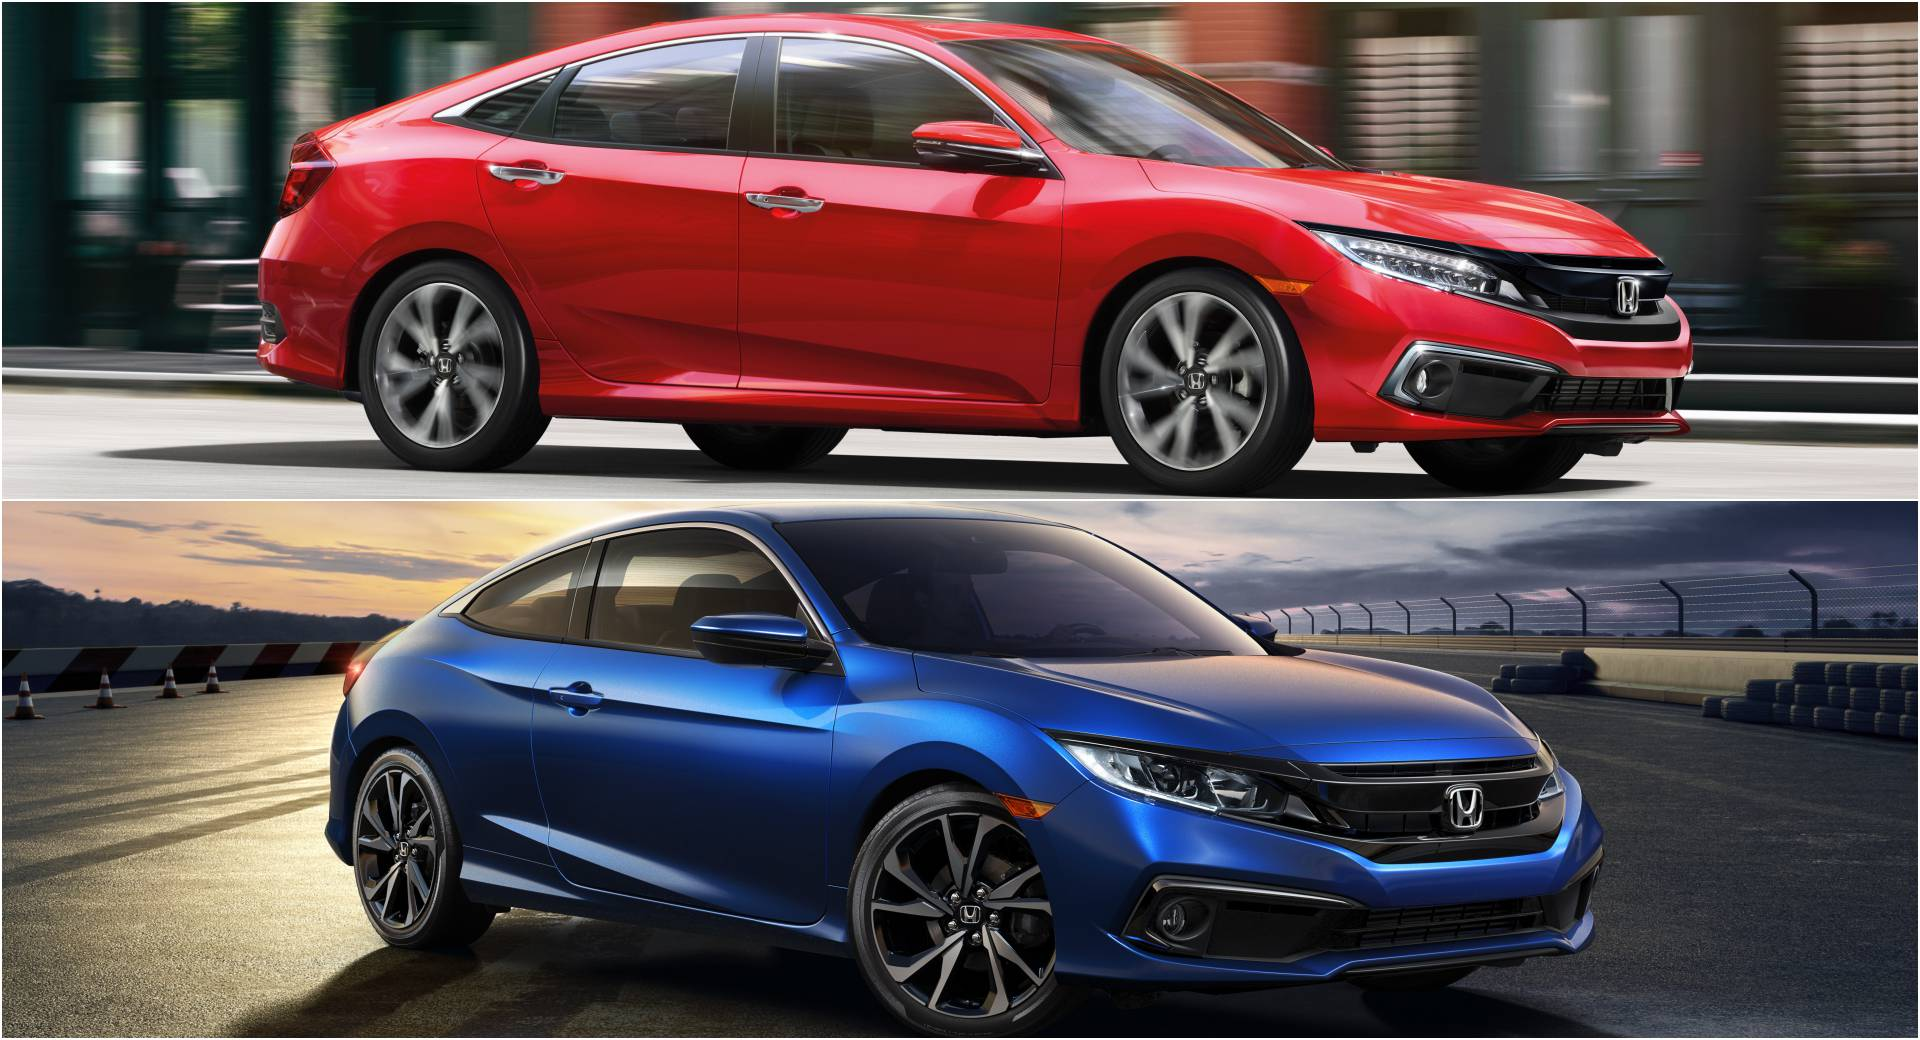 Honda Details 2019 Civic Sedan And Coupe Updates Releases Pricing